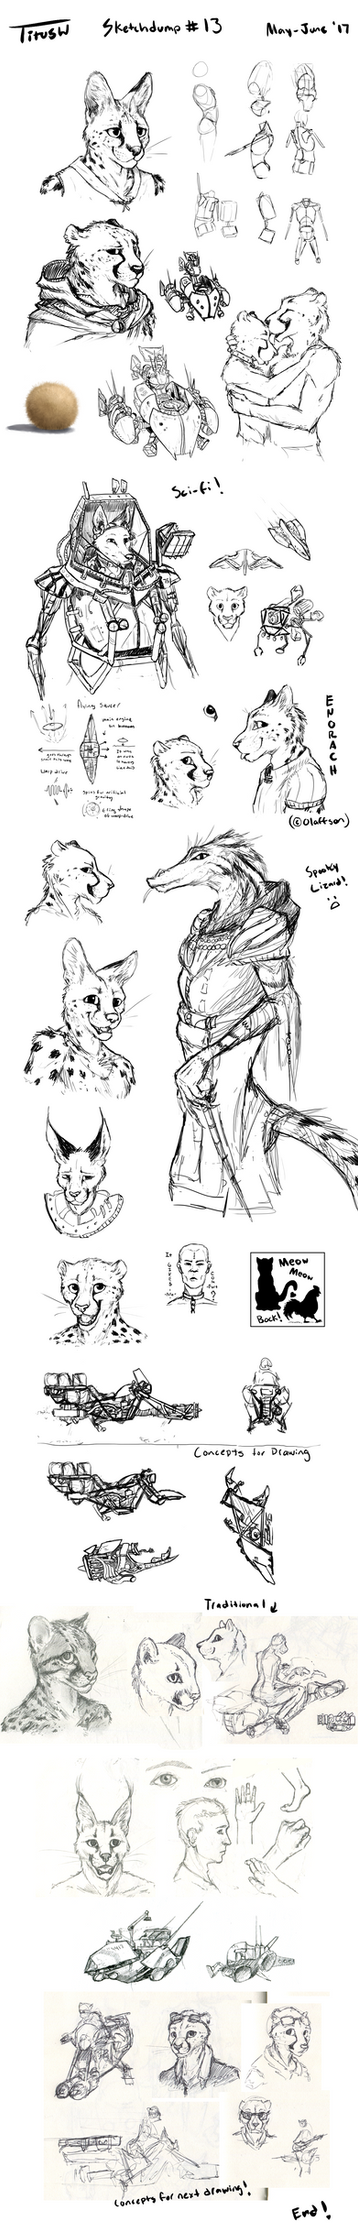 Sketchdump #13 by TitusW